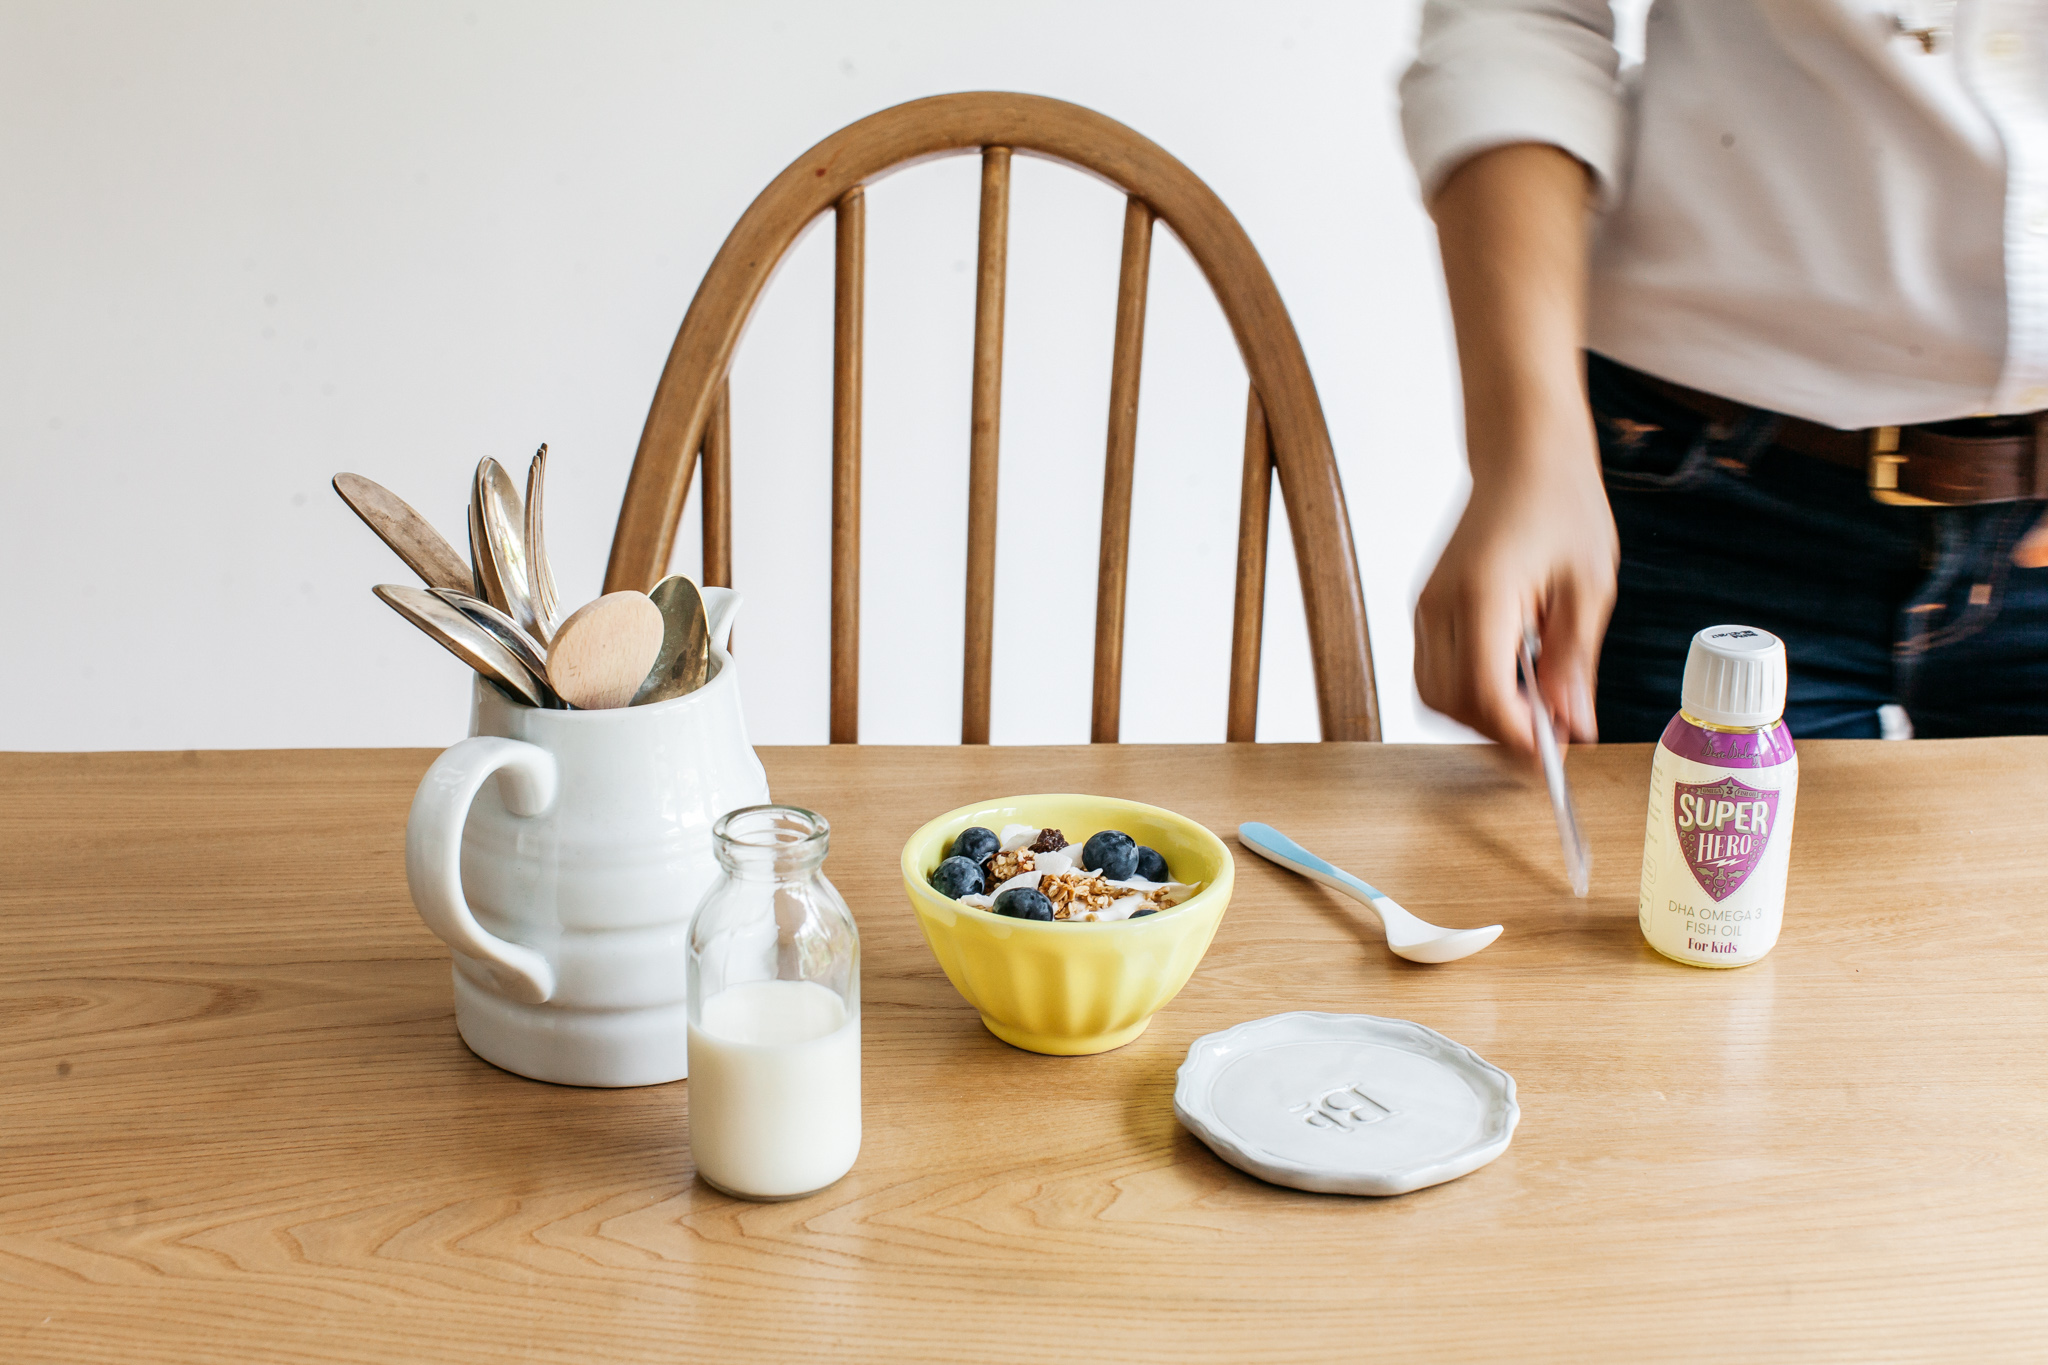 Food lifestyle photography for Bare Biology by Emma Gutteridge